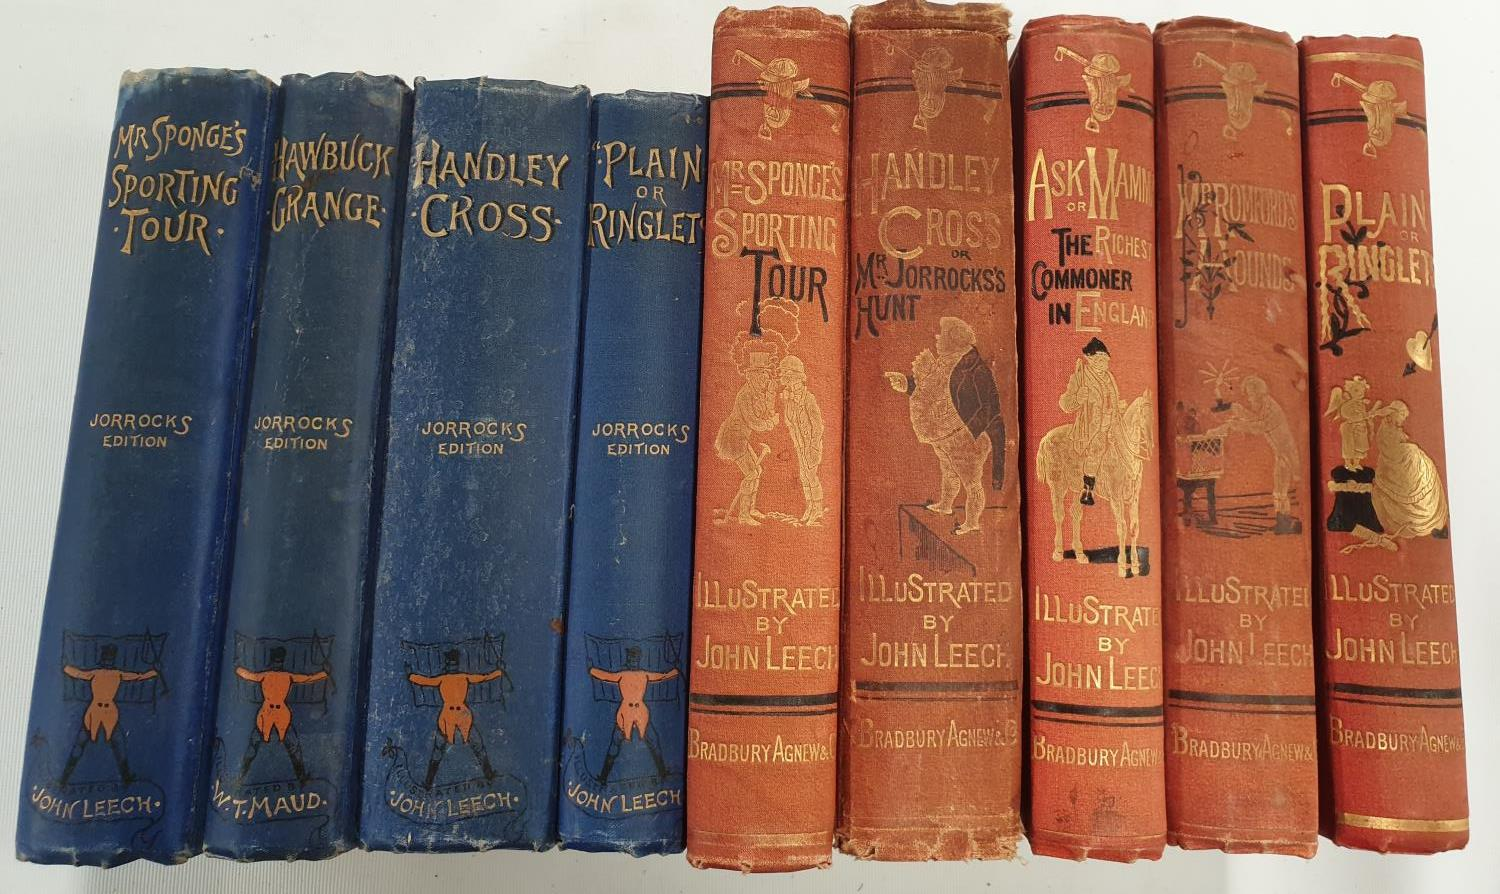 Lot 175 - An original set of five Bradbury, Agnew & Co Books illustrated by John Leech with hand coloured